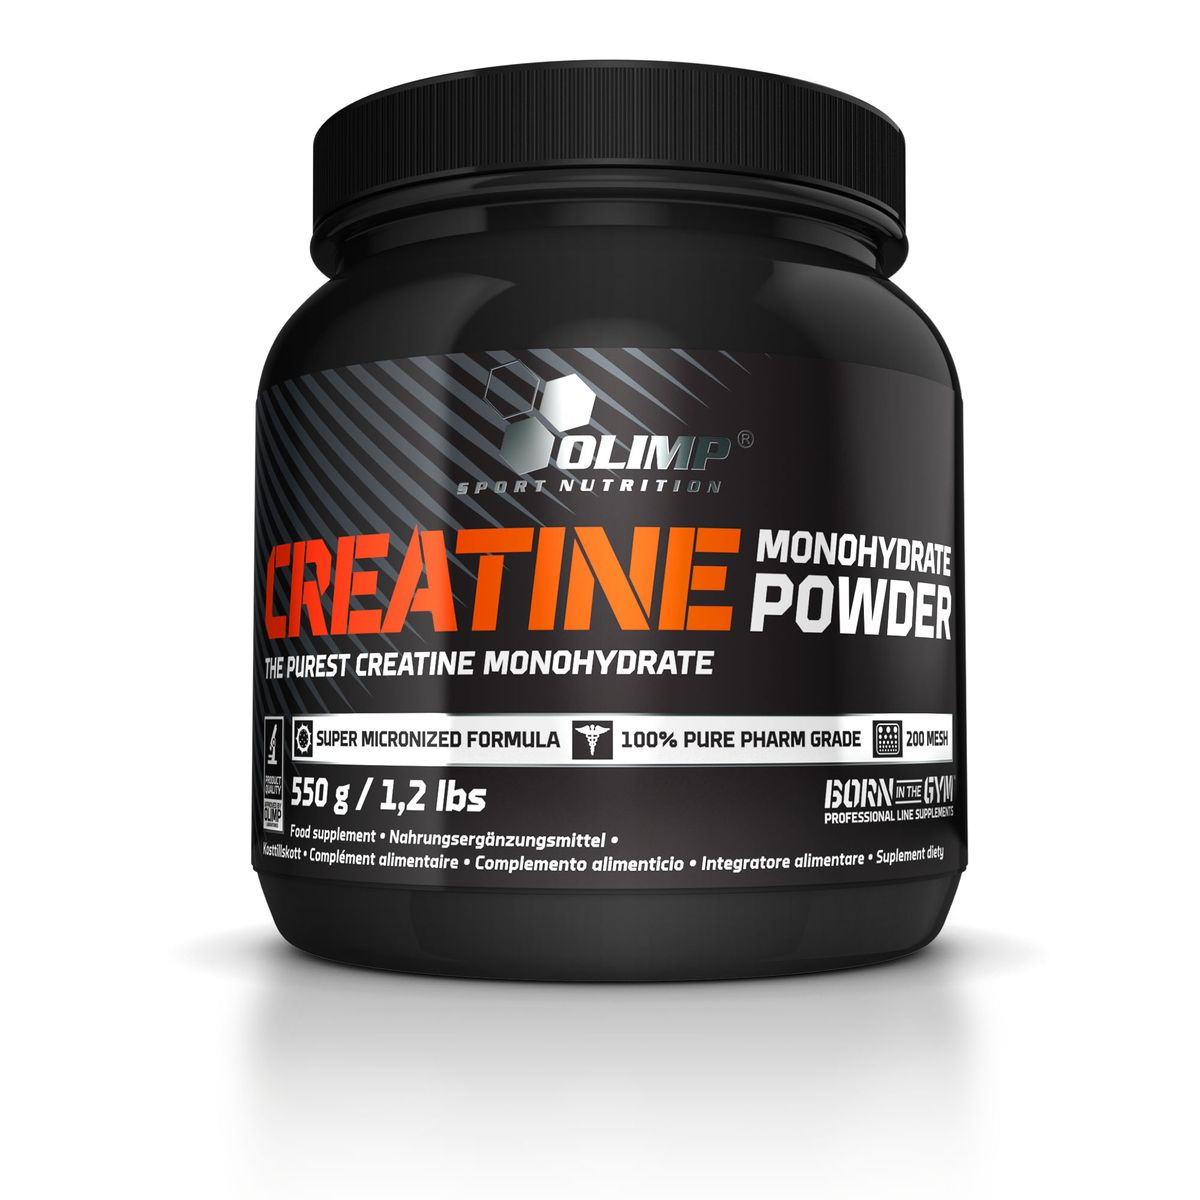 Креатин Olimp Sport Nutrition Monohydrate Powder, 550 г креатин atech nutrition creatine monohydrate 100% 300 г